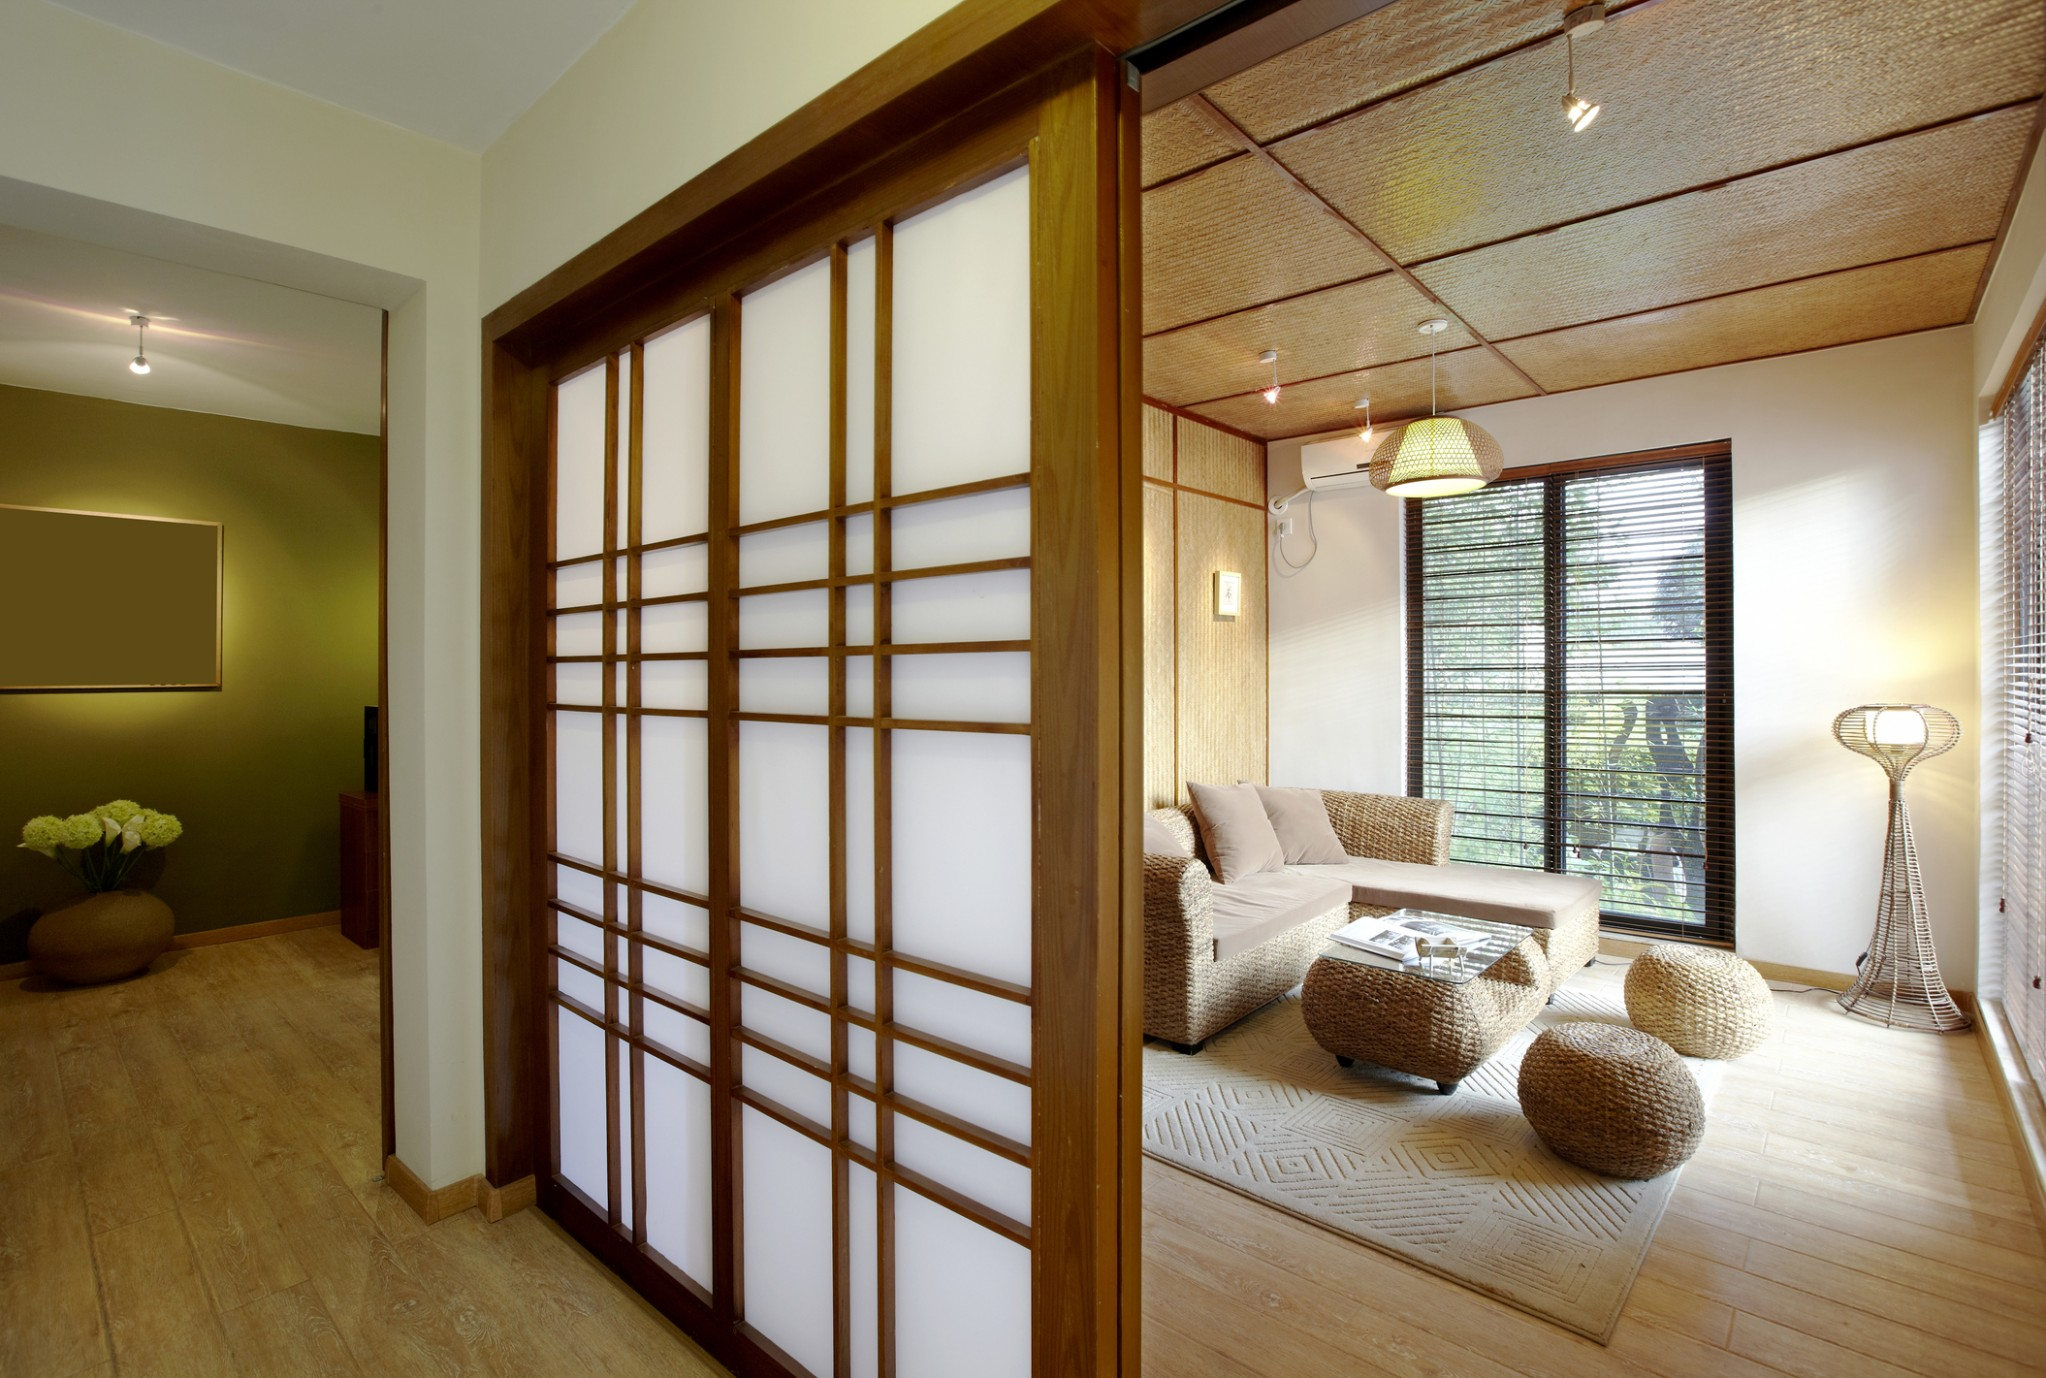 Japanese Apartment Design  LoveToKnow - Apartment Design Japanese Style